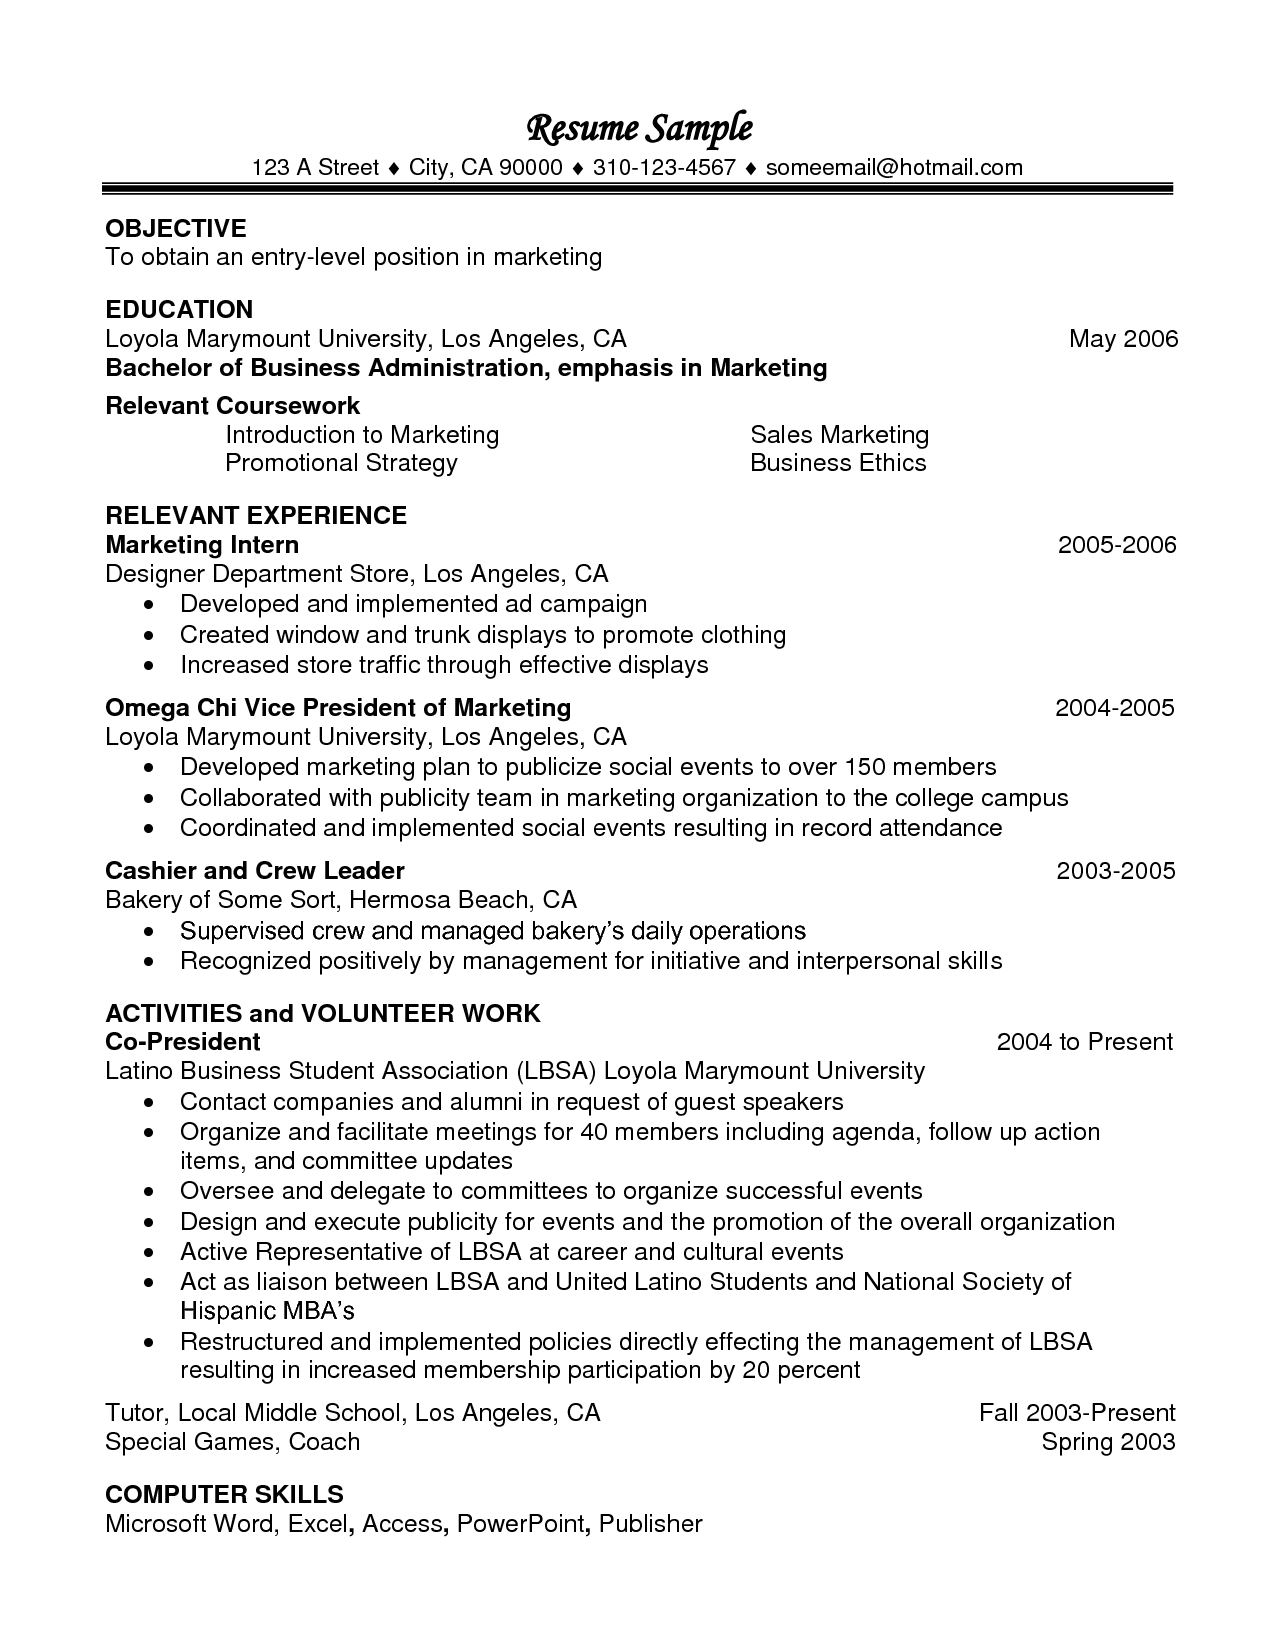 Technical Resume Examples Relevant Coursework In Resume Example  Httpwwwresumecareer